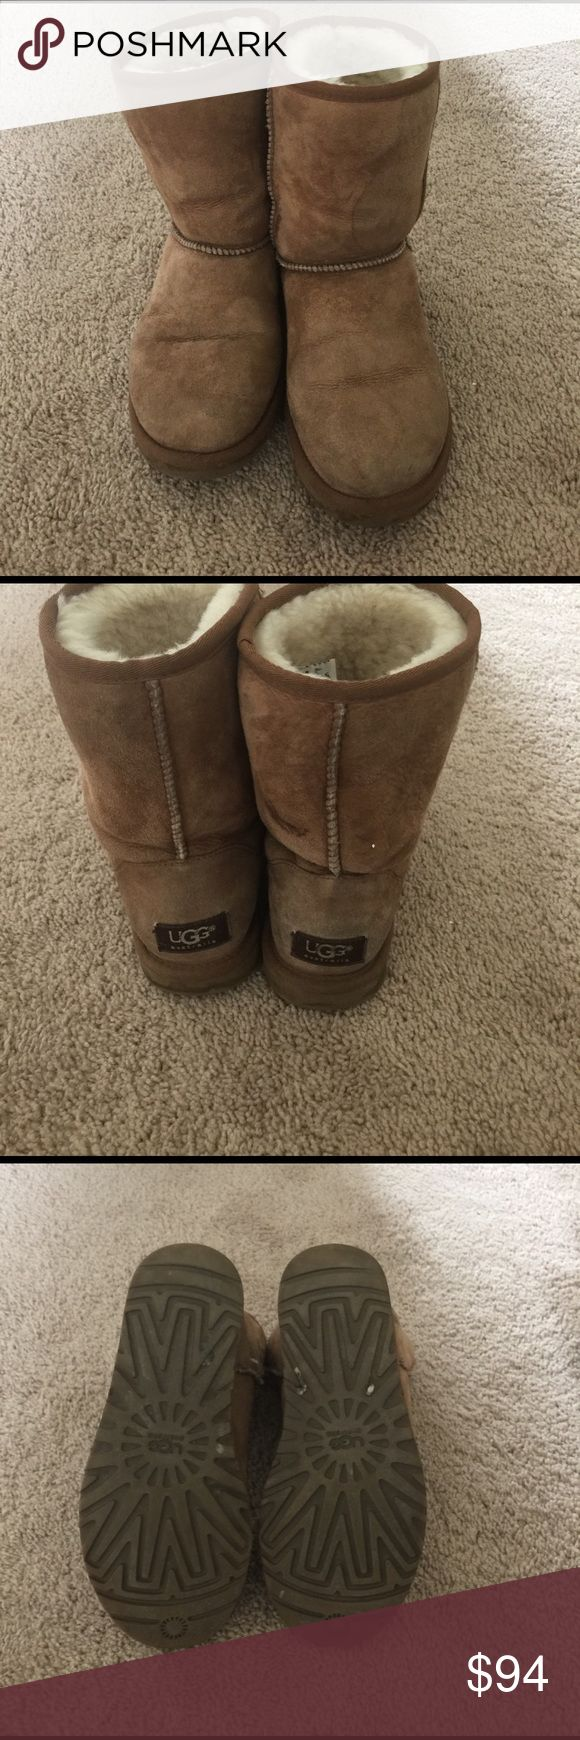 Brown short ugg boots Light brown short ugg boots. Worn a handful of times. Price is negotiable and I offer a 10% bundle savings off 2 or more items. UGG Shoes Winter & Rain Boots